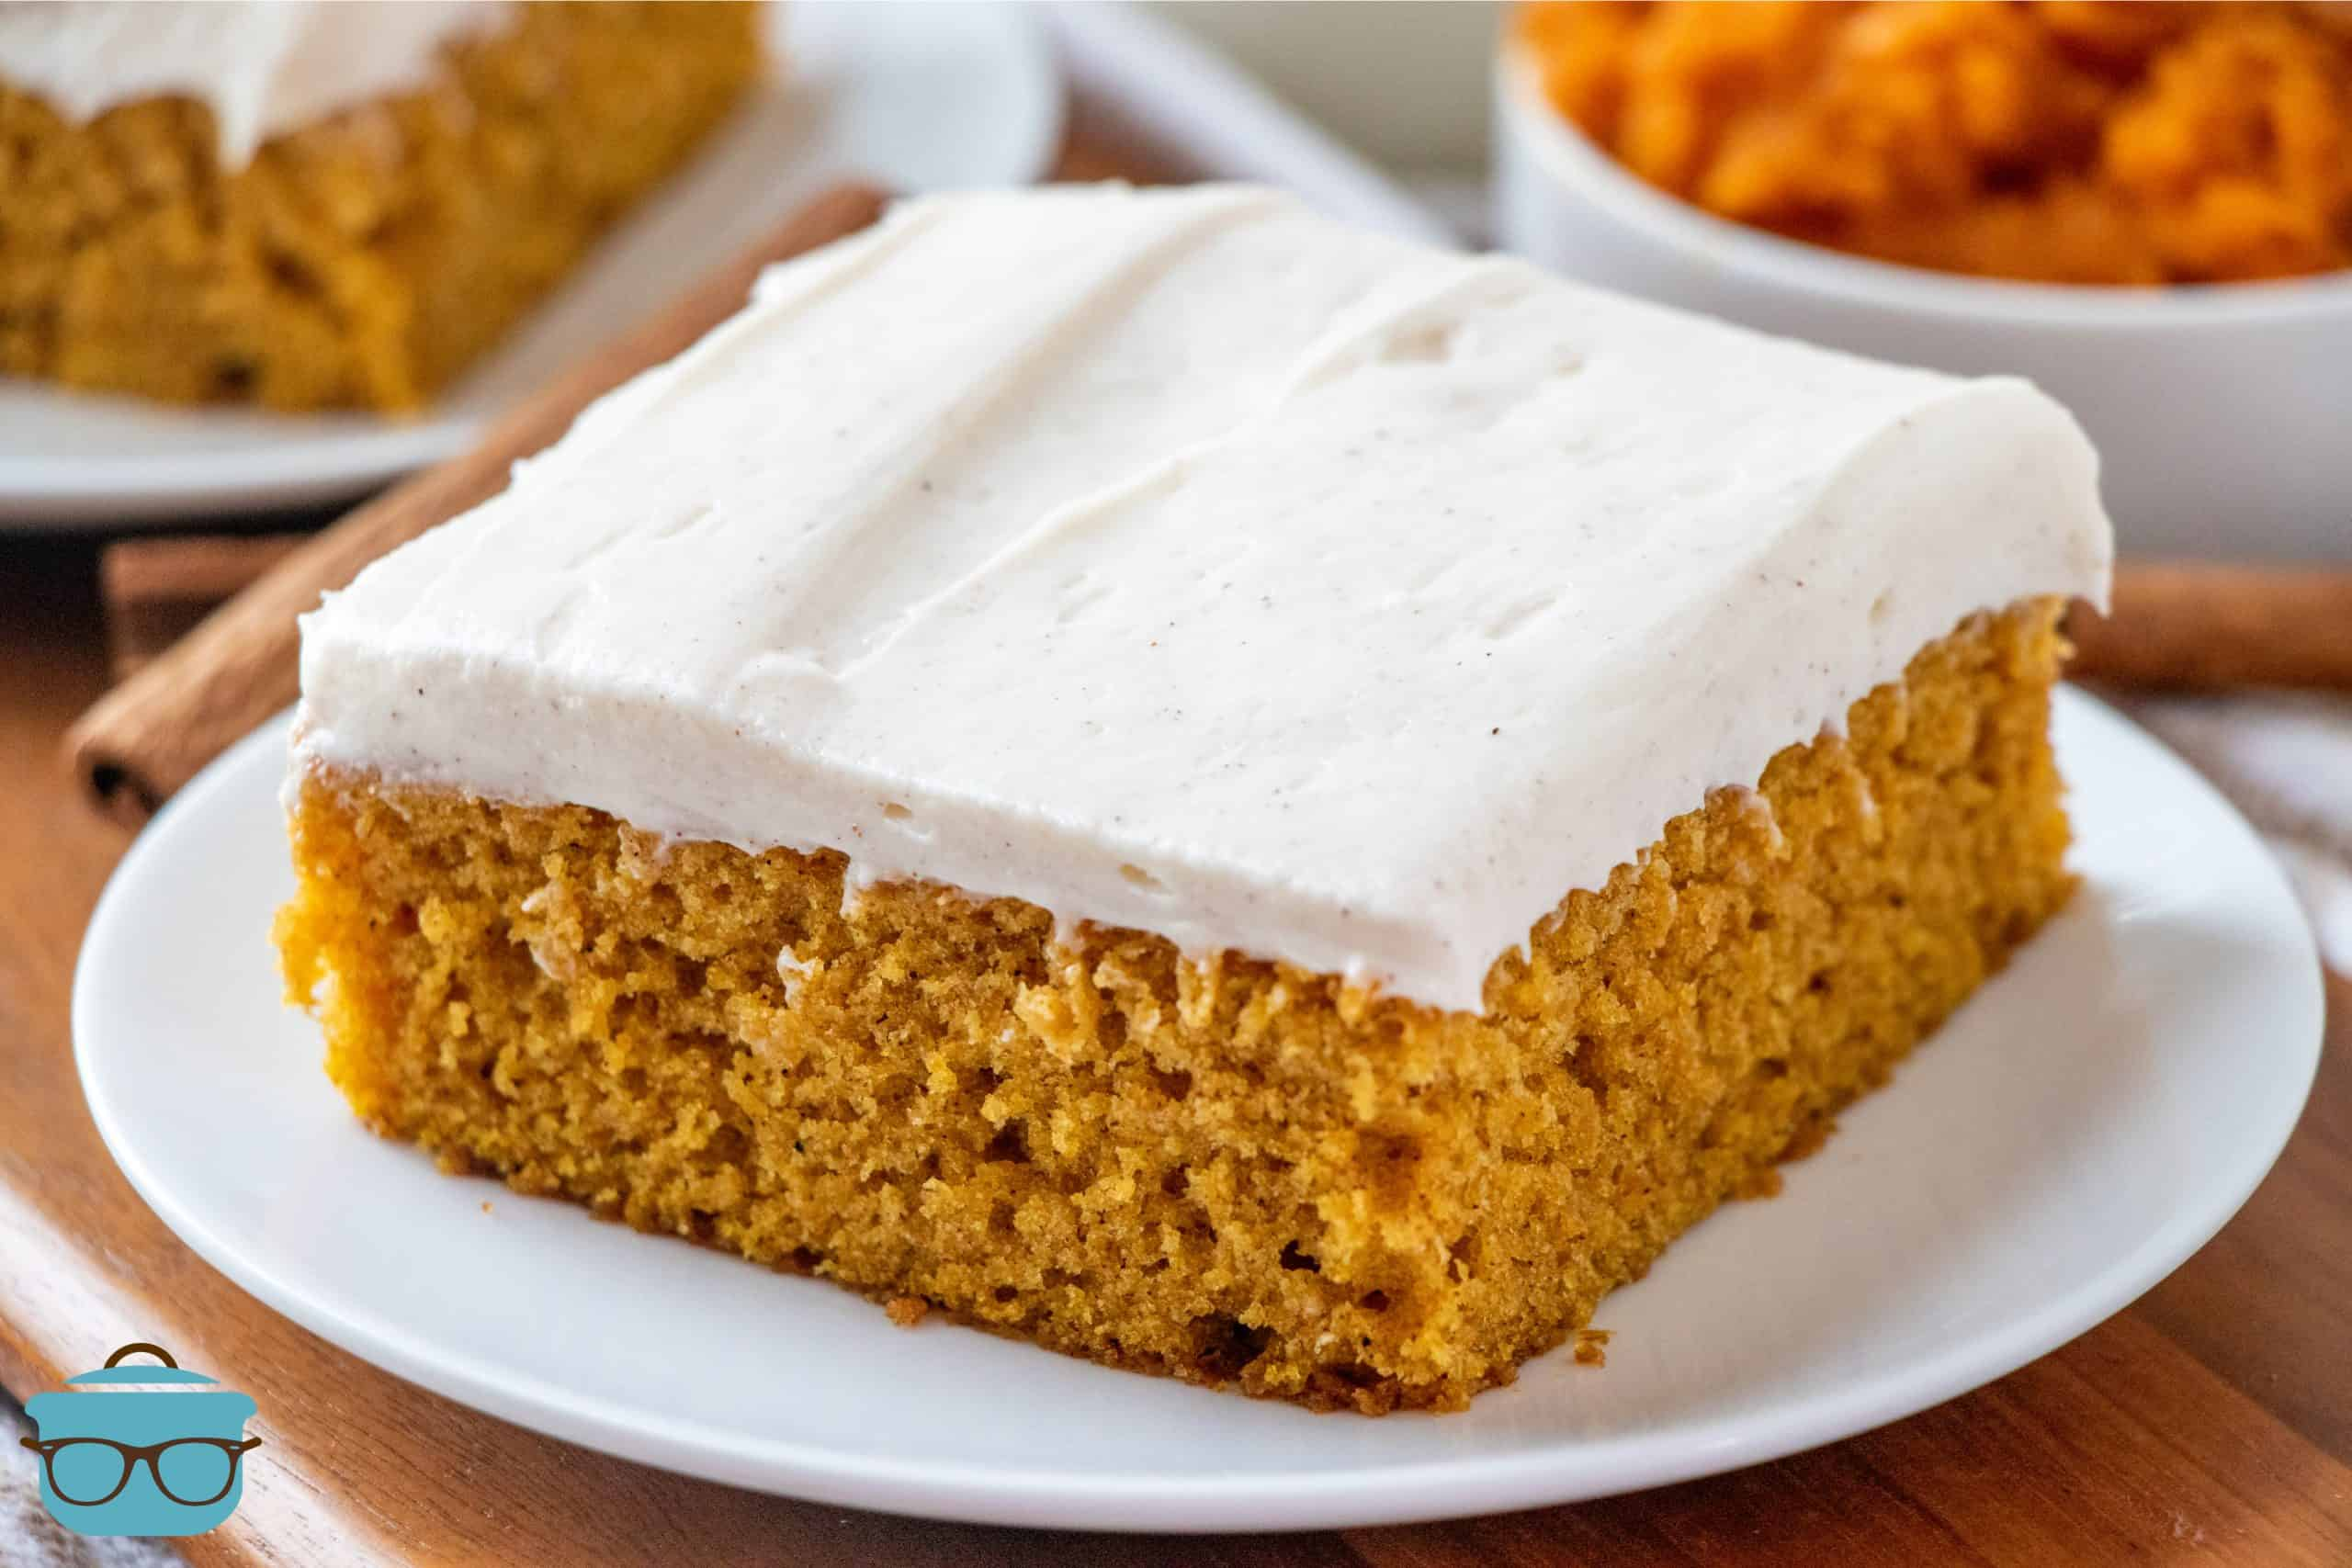 Pumpkin cake bar slice on a small white plate with a bowl of pumpkin puree in a bowl in the background.